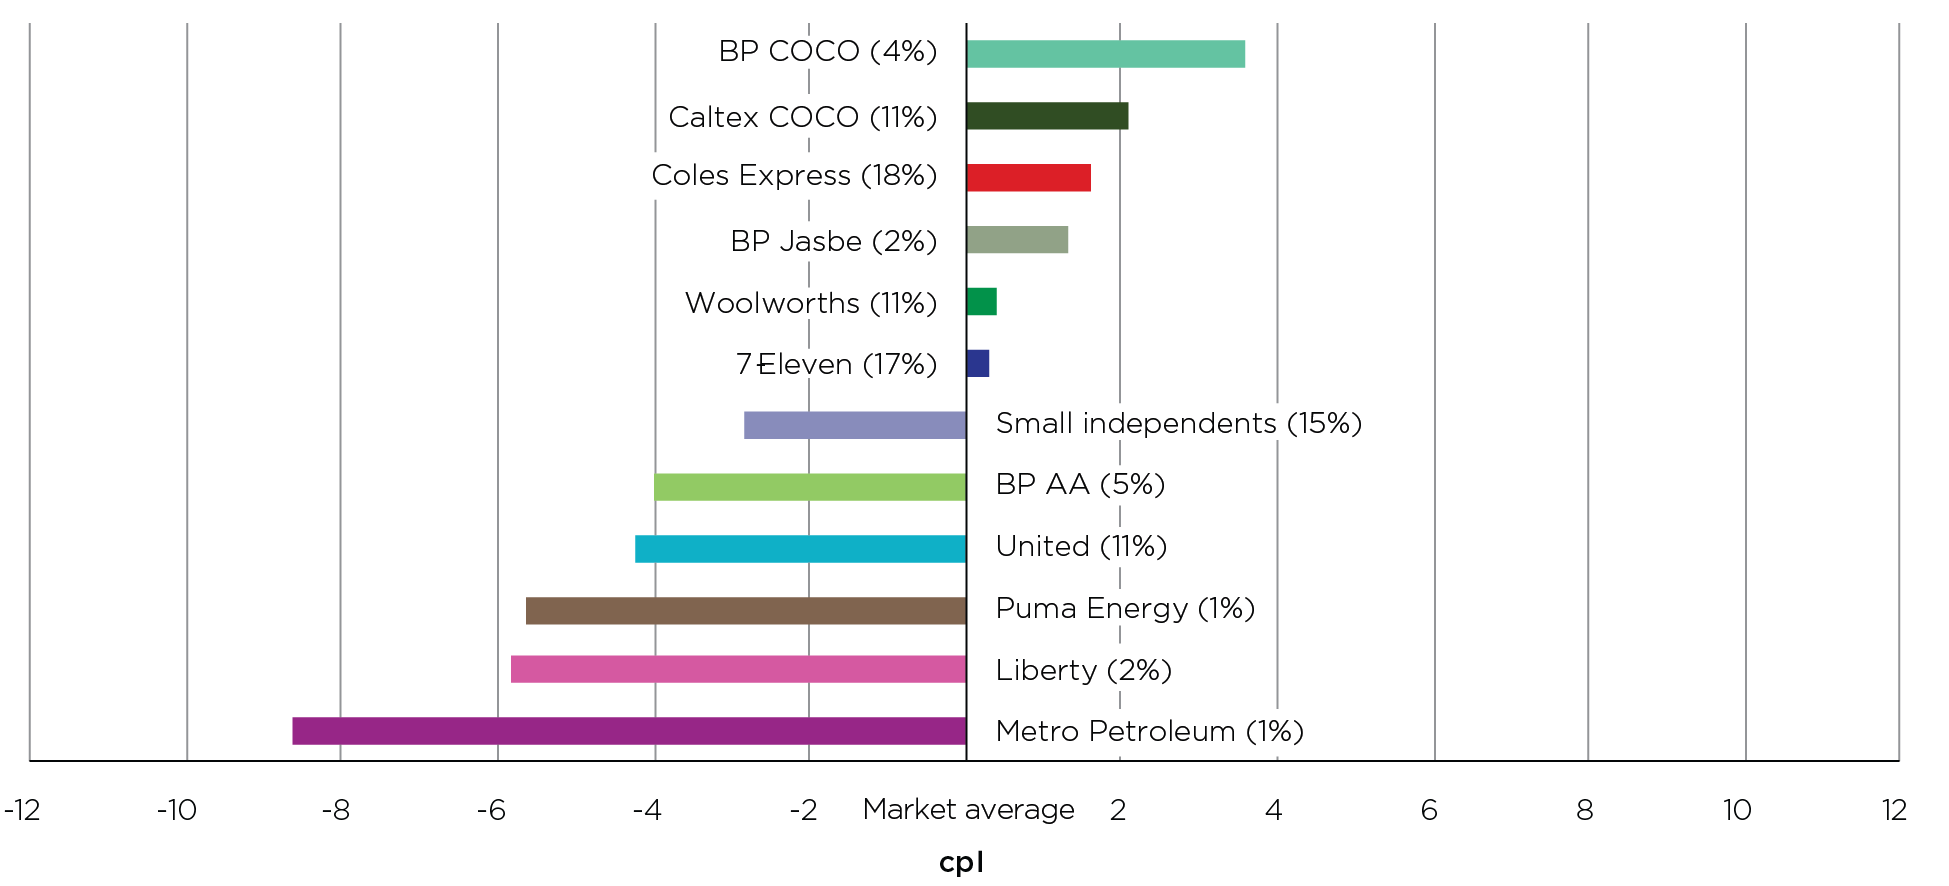 In 2020, Melbourne motorists could have saved 12.2 cents per litre by buying petrol at the lowest-priced retailer, which was Metro Petroleum, rather than the highest-priced retailer, which was BP COCO.